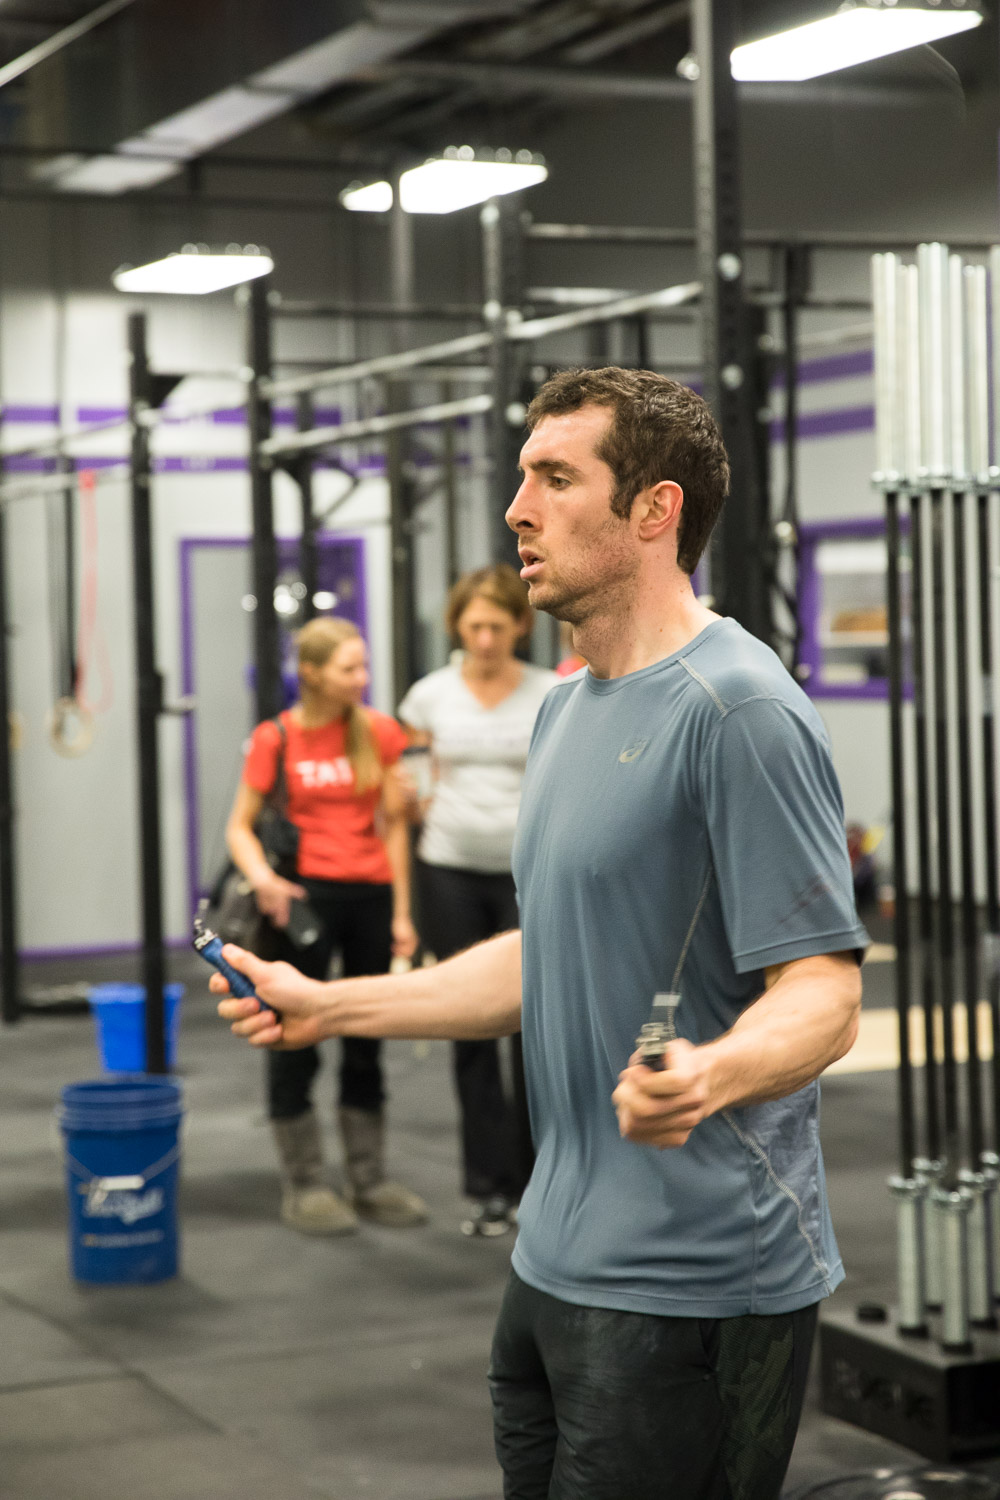 crossfit_homeward-64.jpg